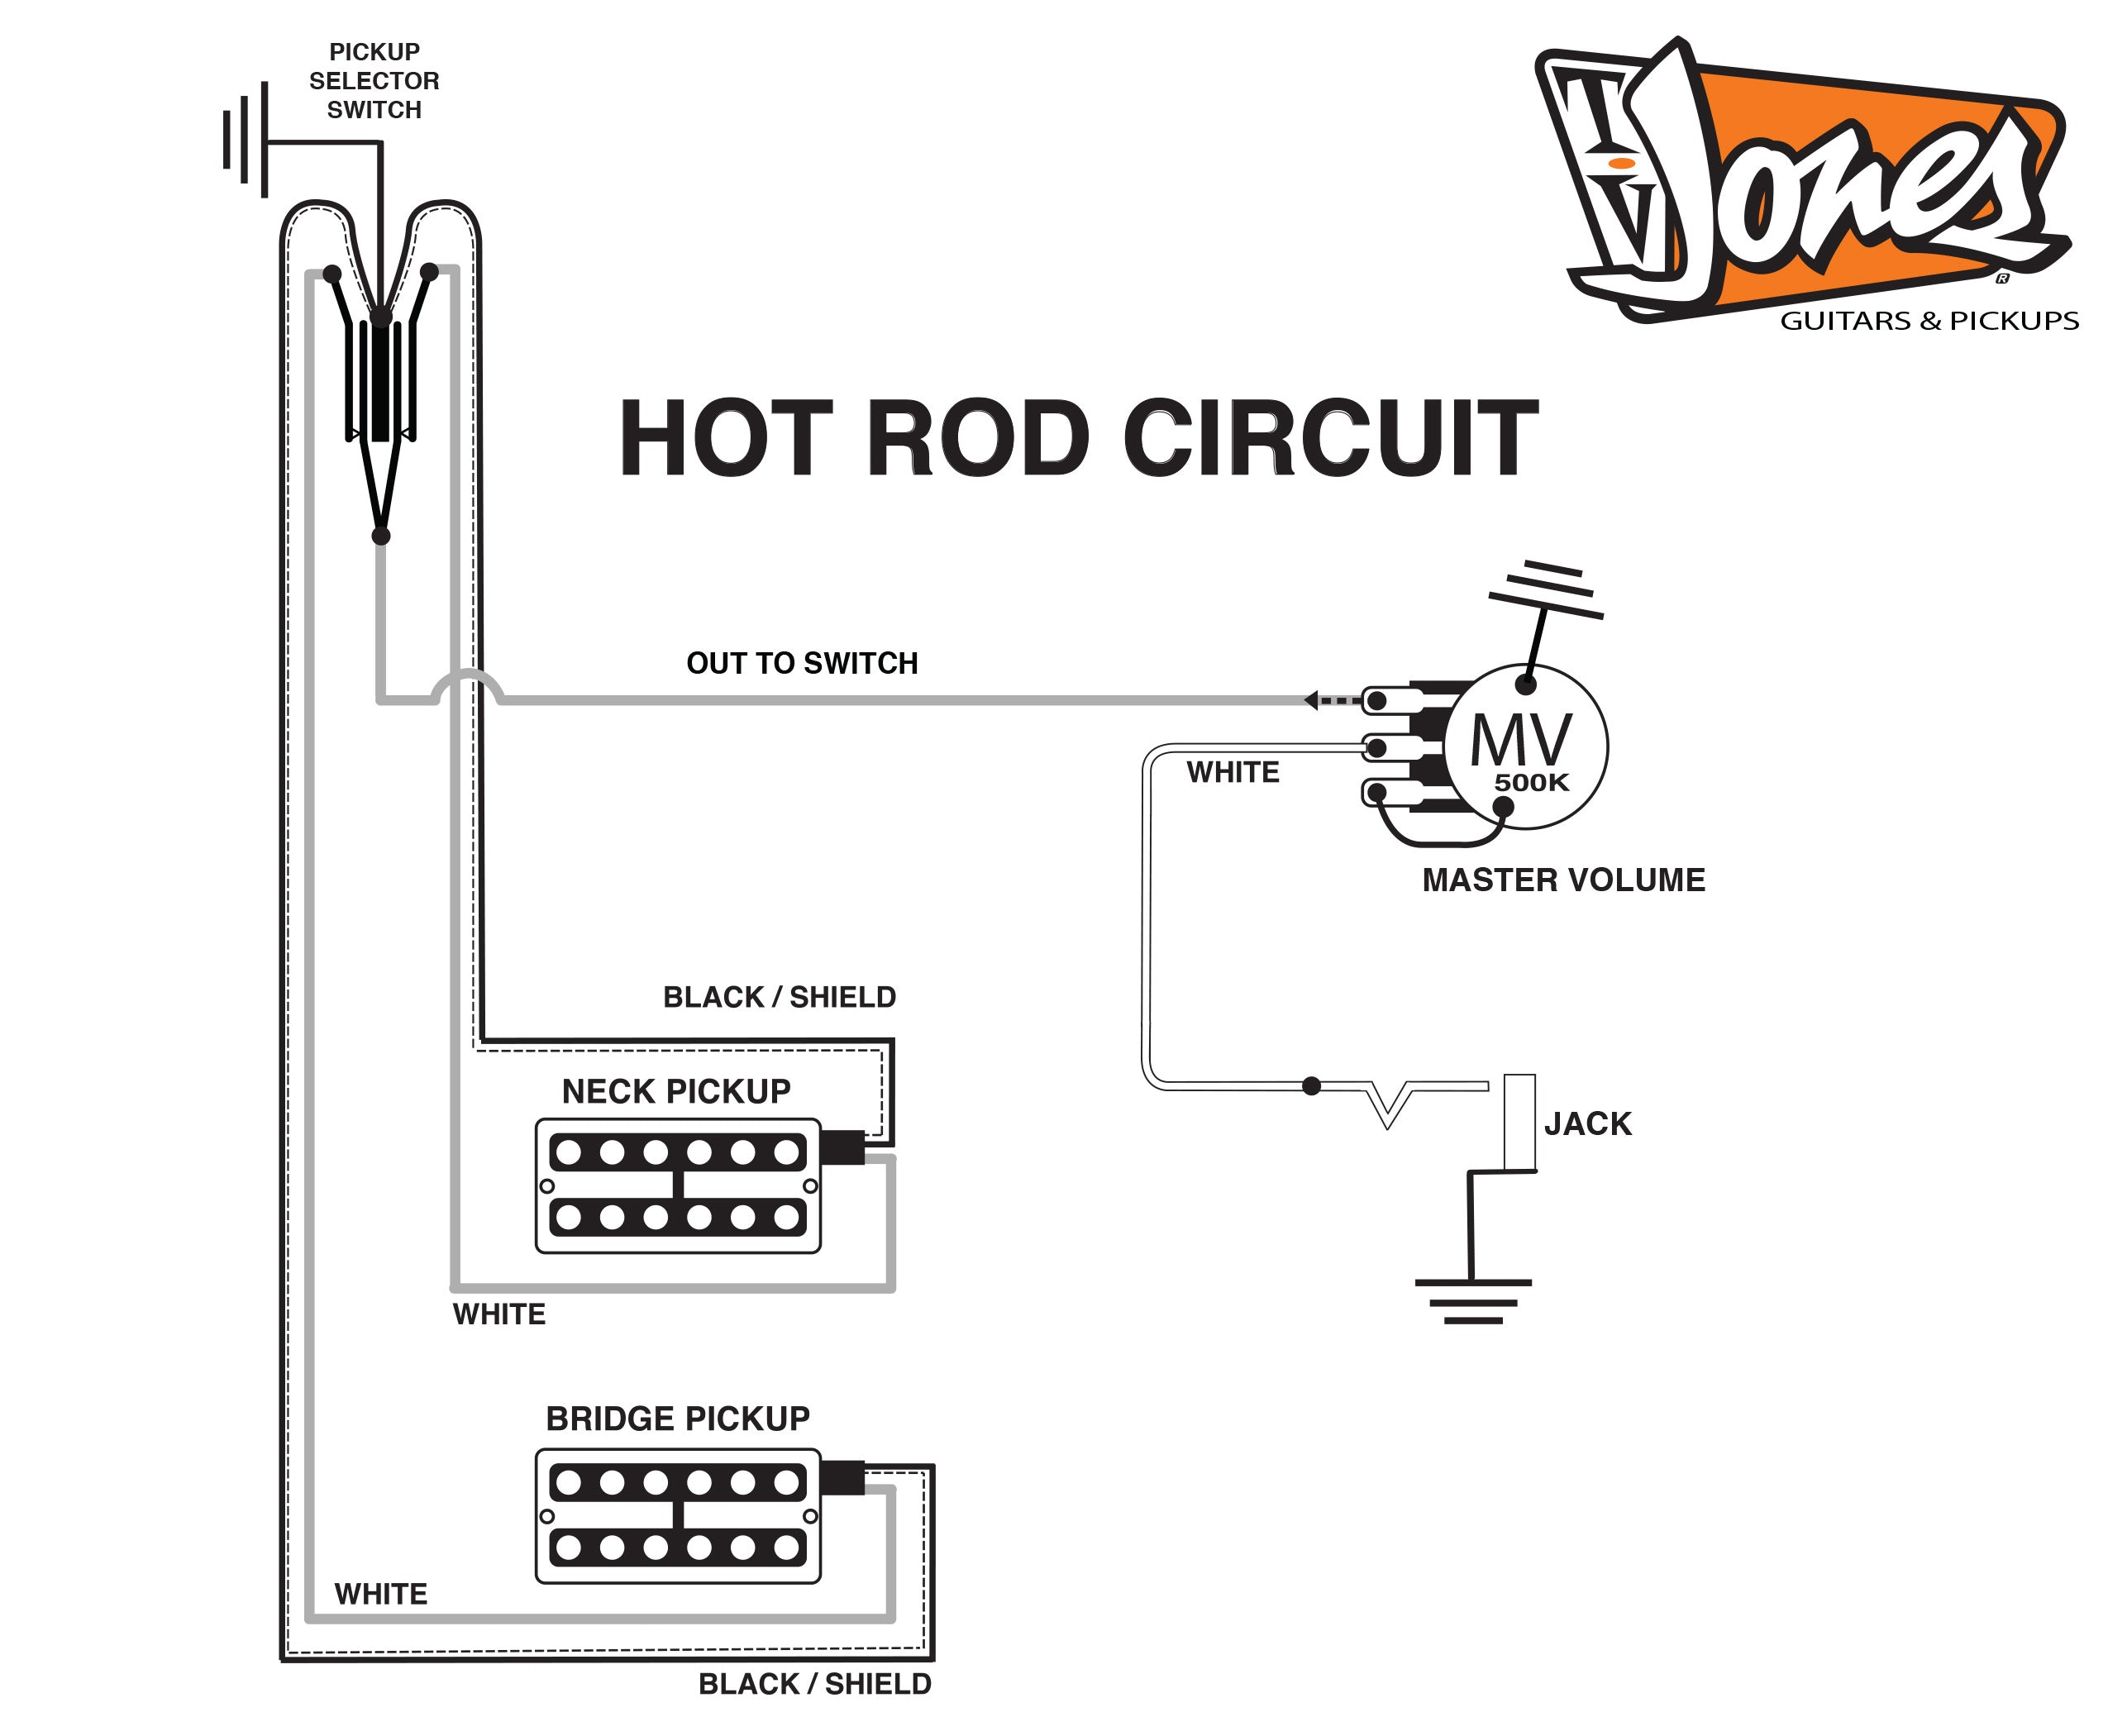 Mud switch broke; convert to hot rod wiring? : General